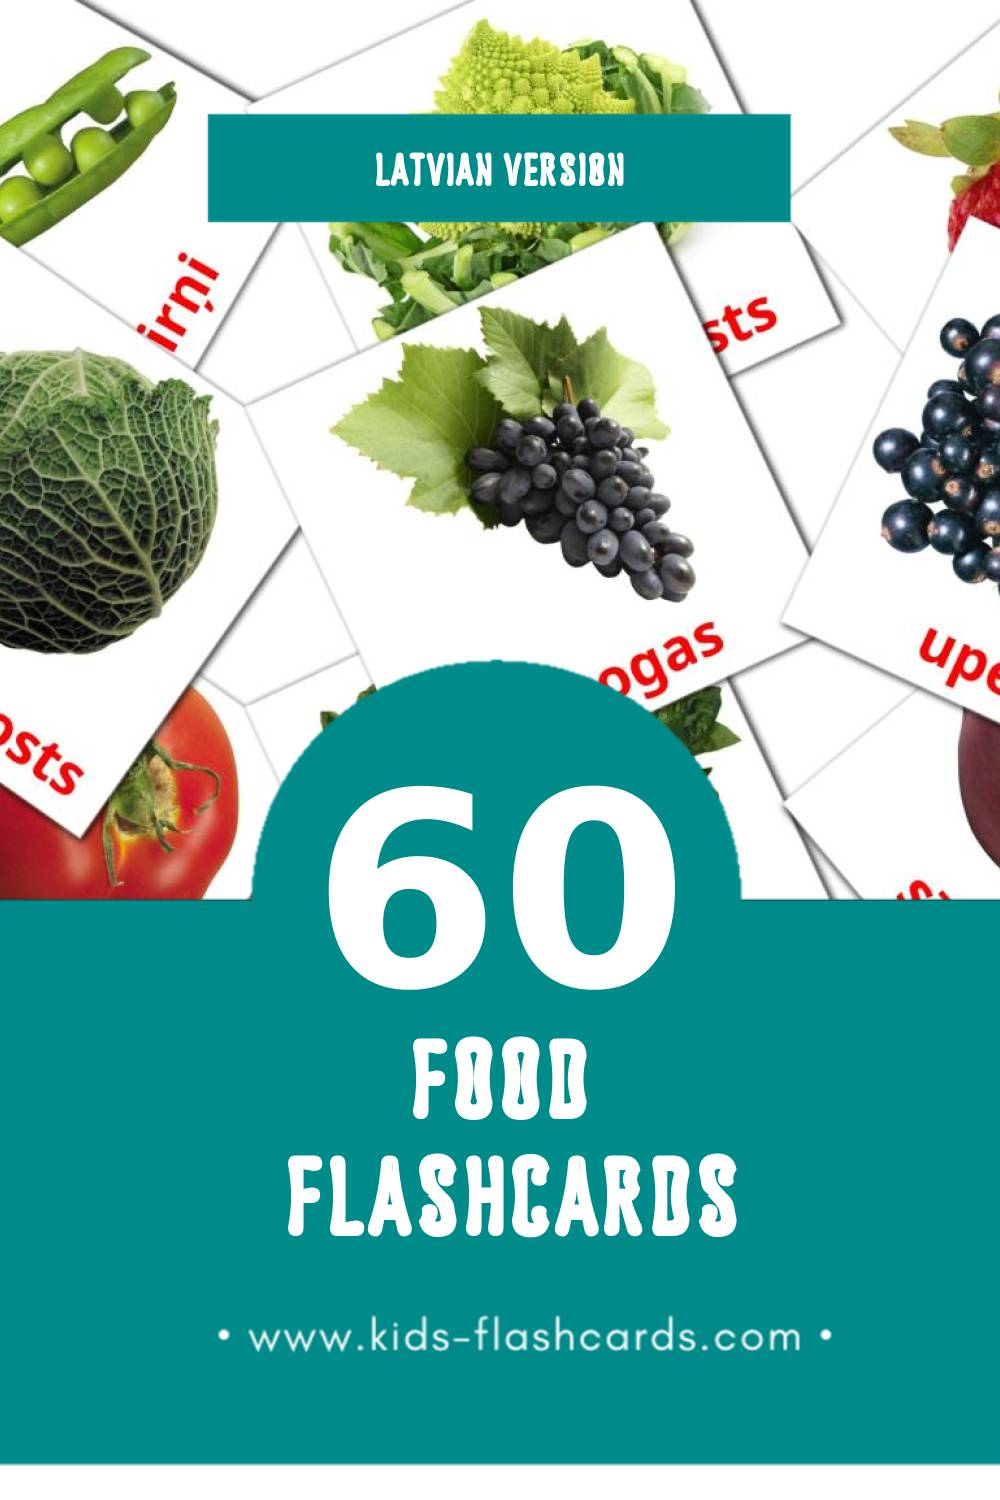 Visual Ēdiens Flashcards for Toddlers (60 cards in Latvian)